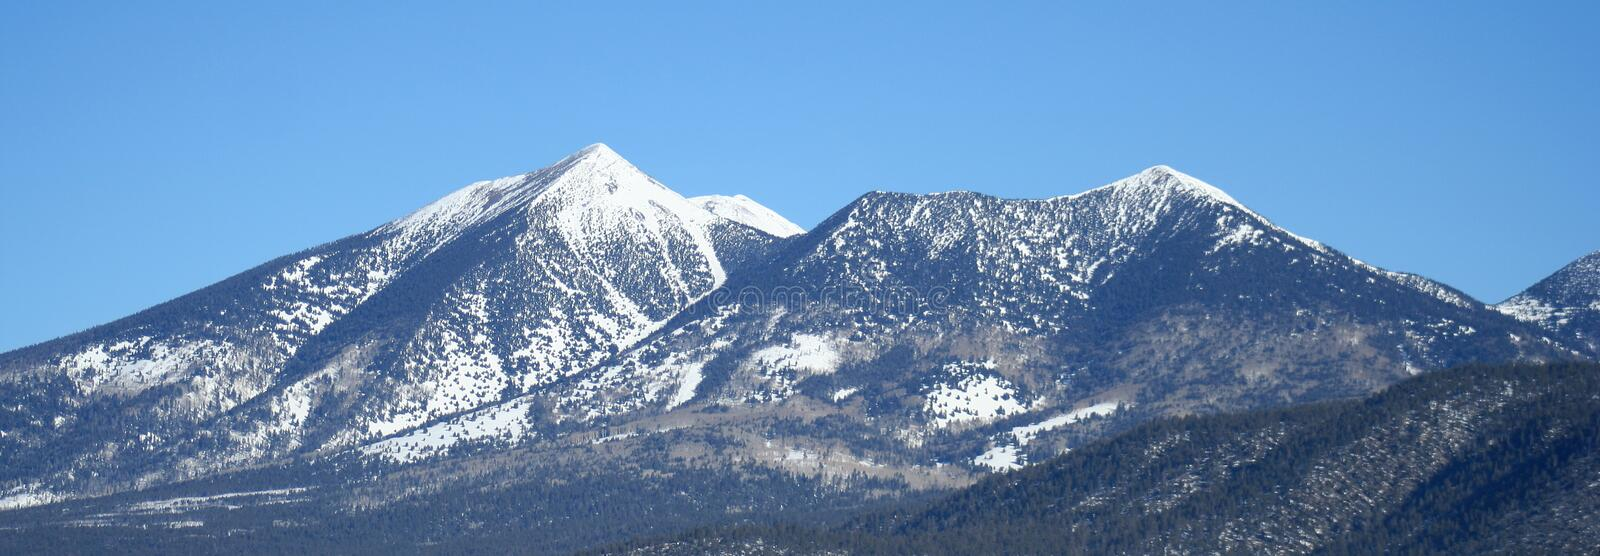 Arizona's San Francisco Peaks in Winter. A winter view of the southern slopes of the San Francisco Peaks, Arizona royalty free stock photos